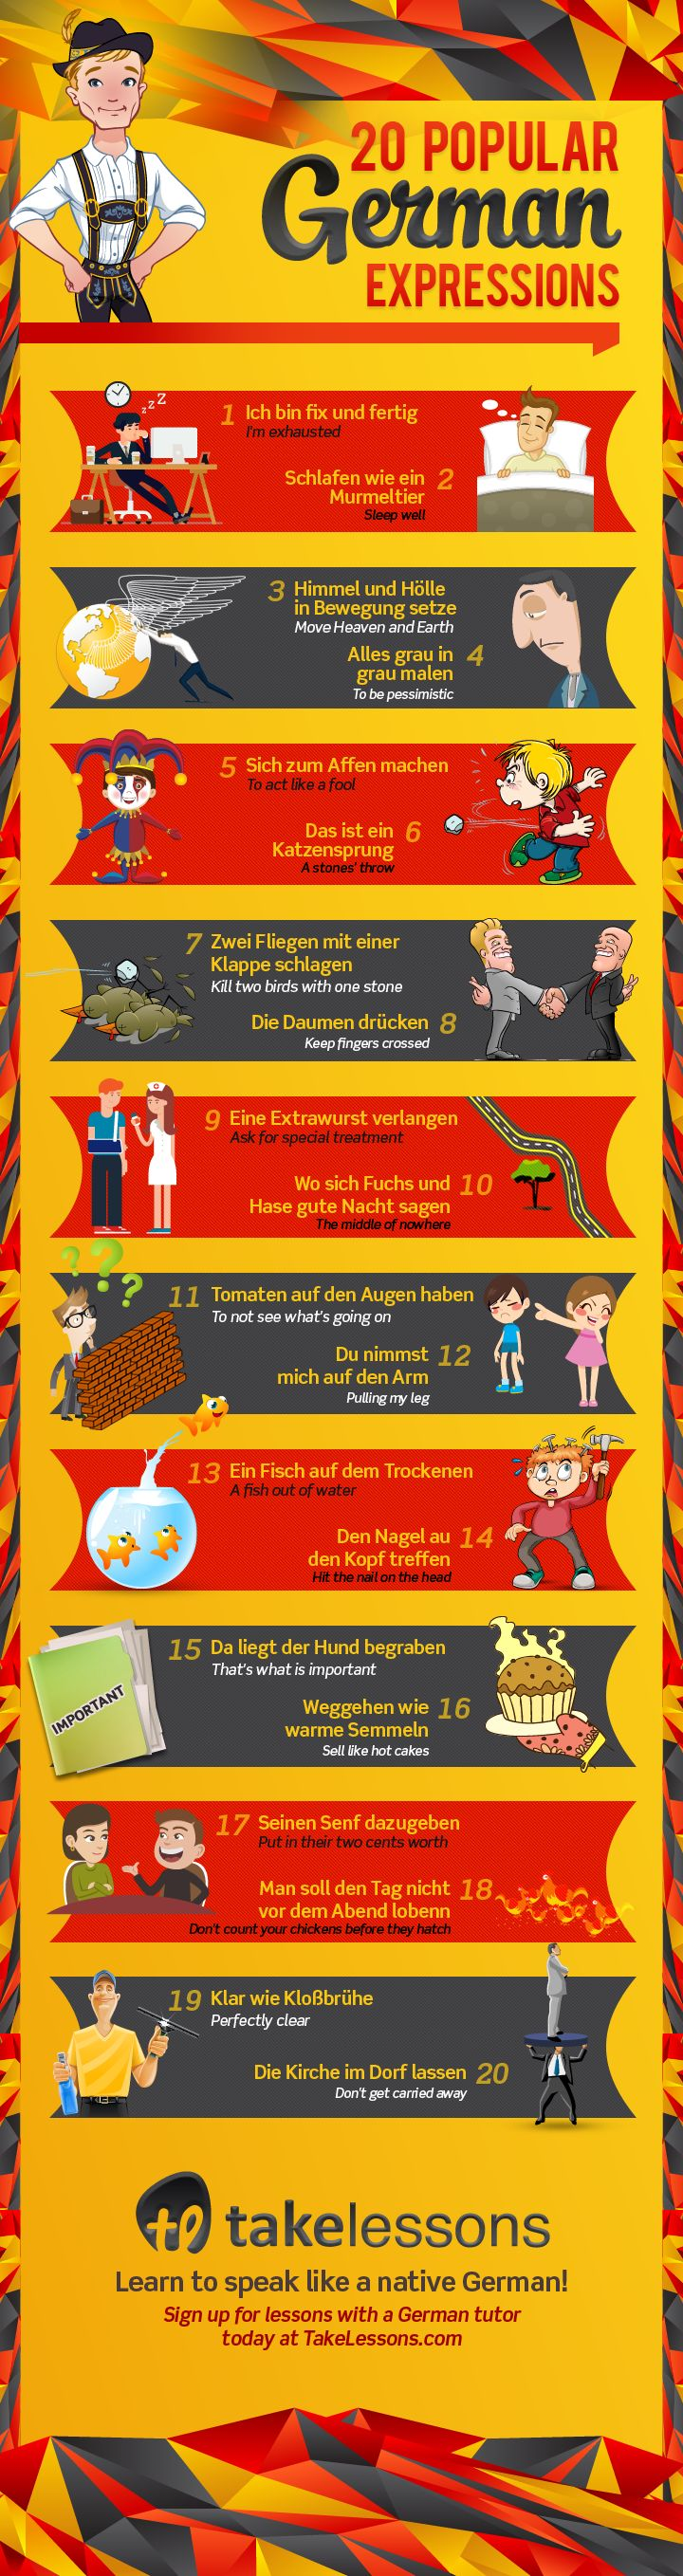 20 Popular German Expressions – And What They Mean